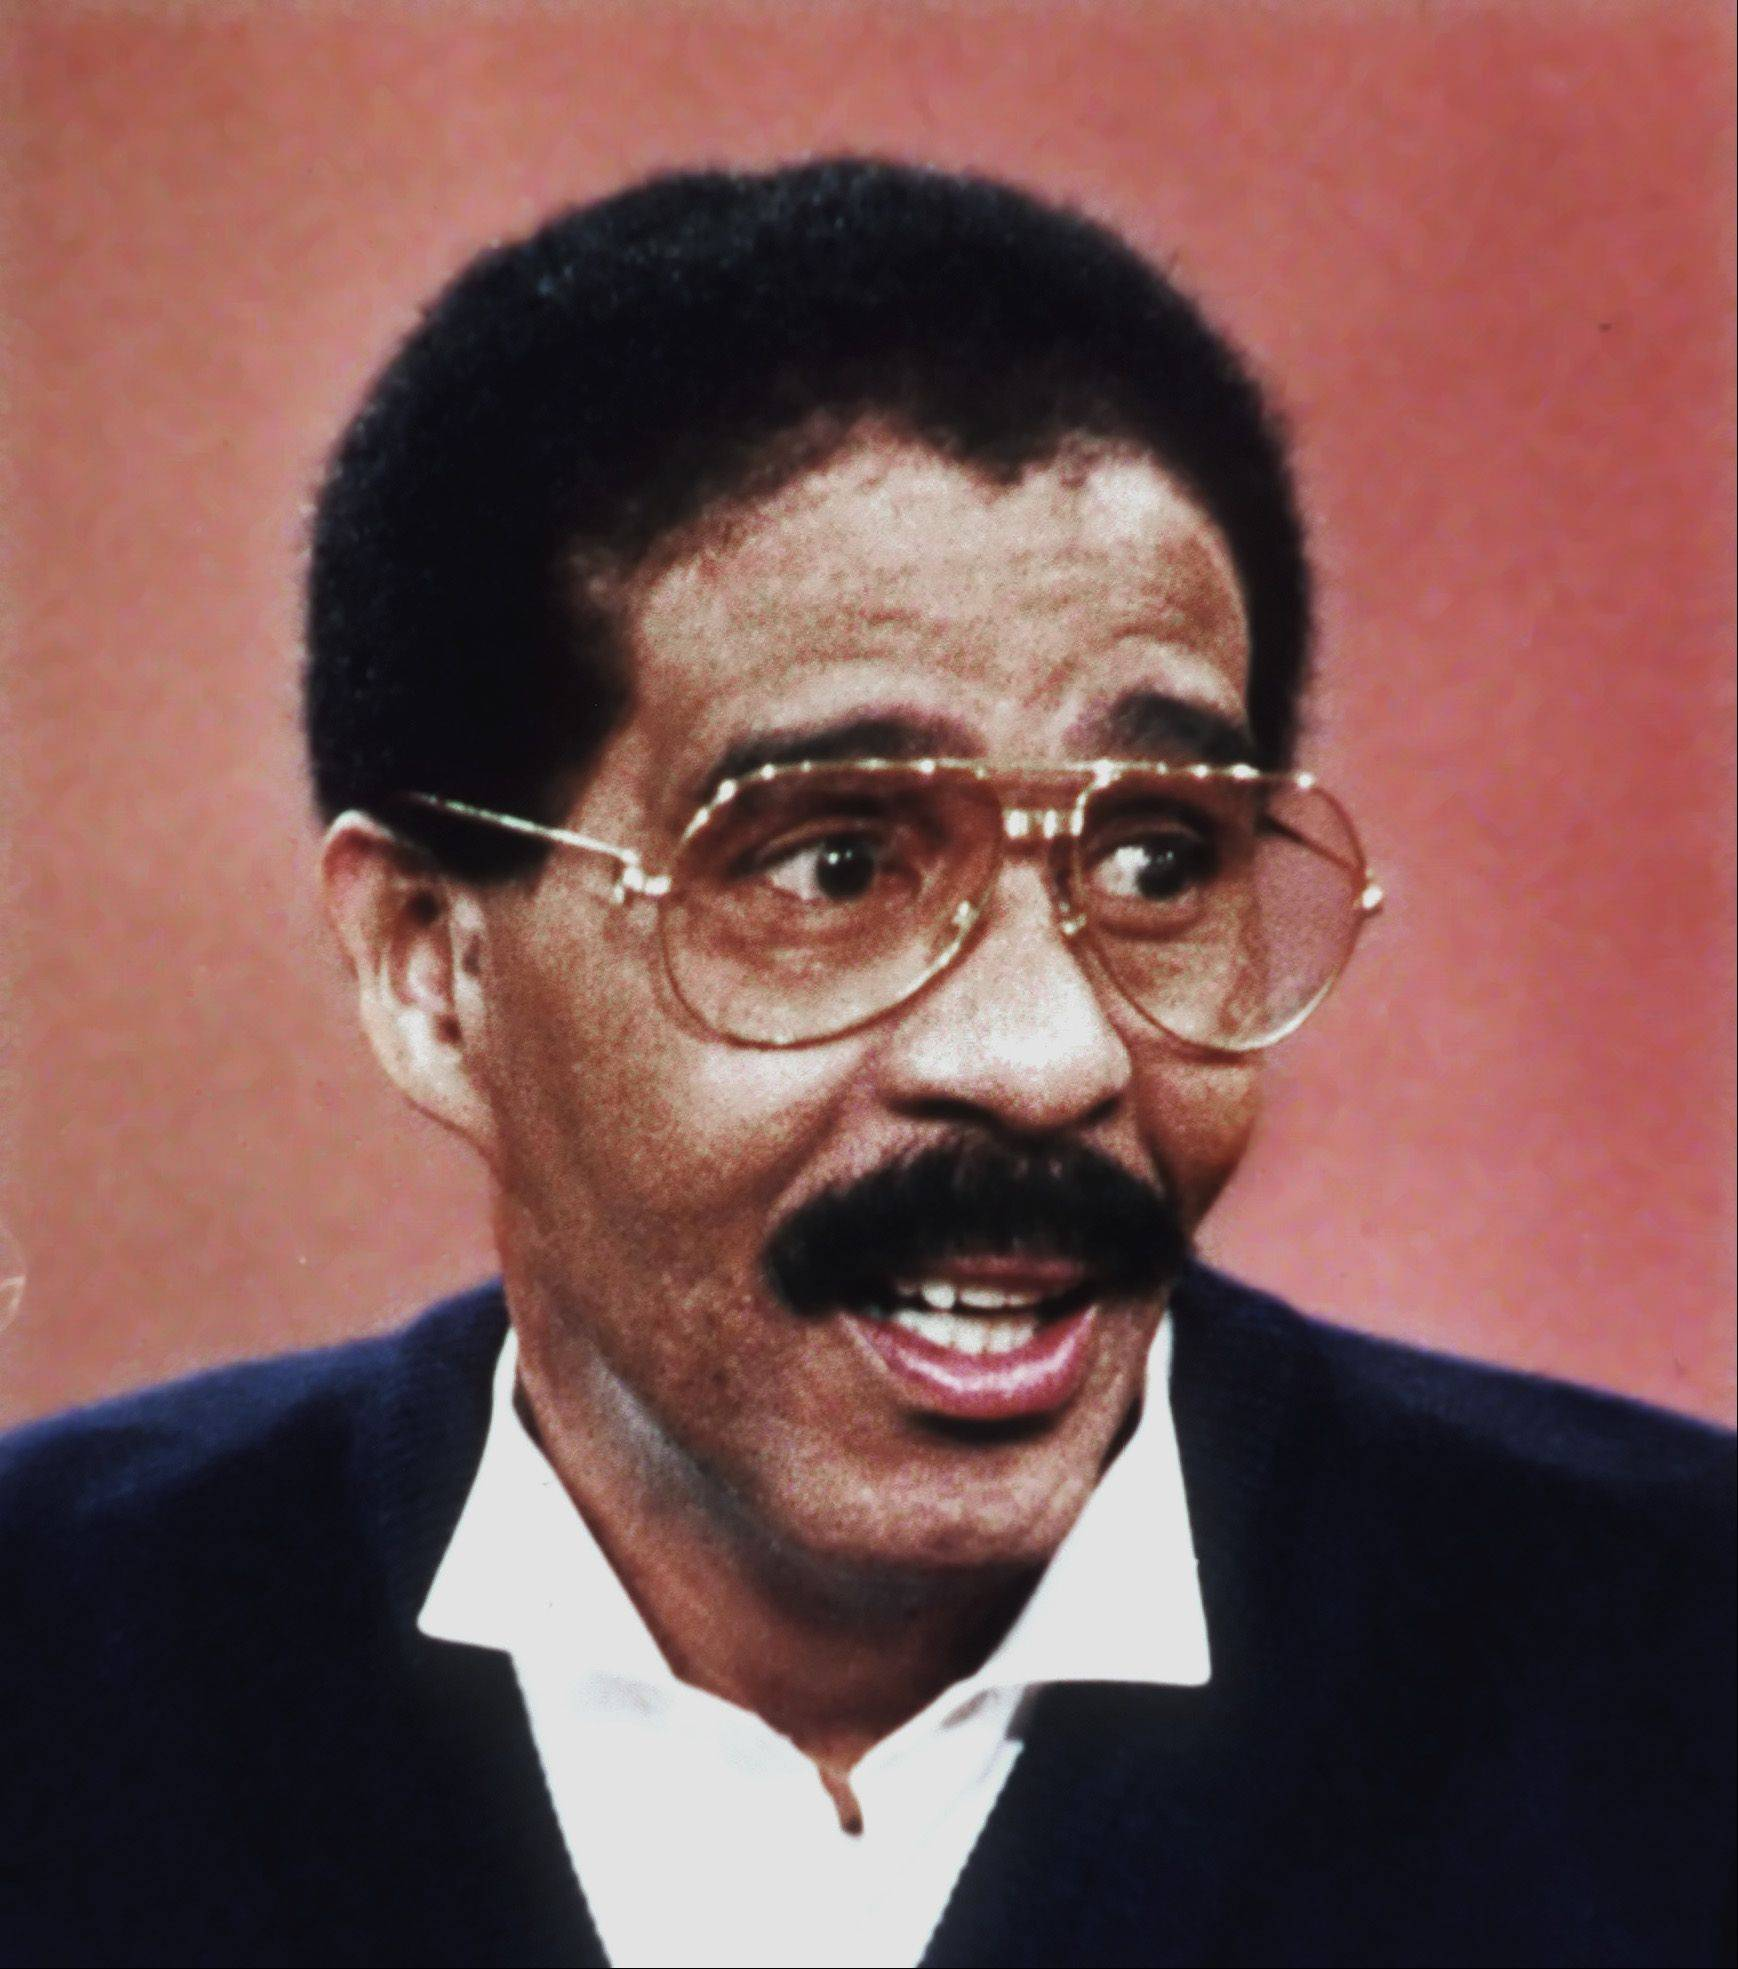 @$ID/[No paragraph style]:Richard Pryor